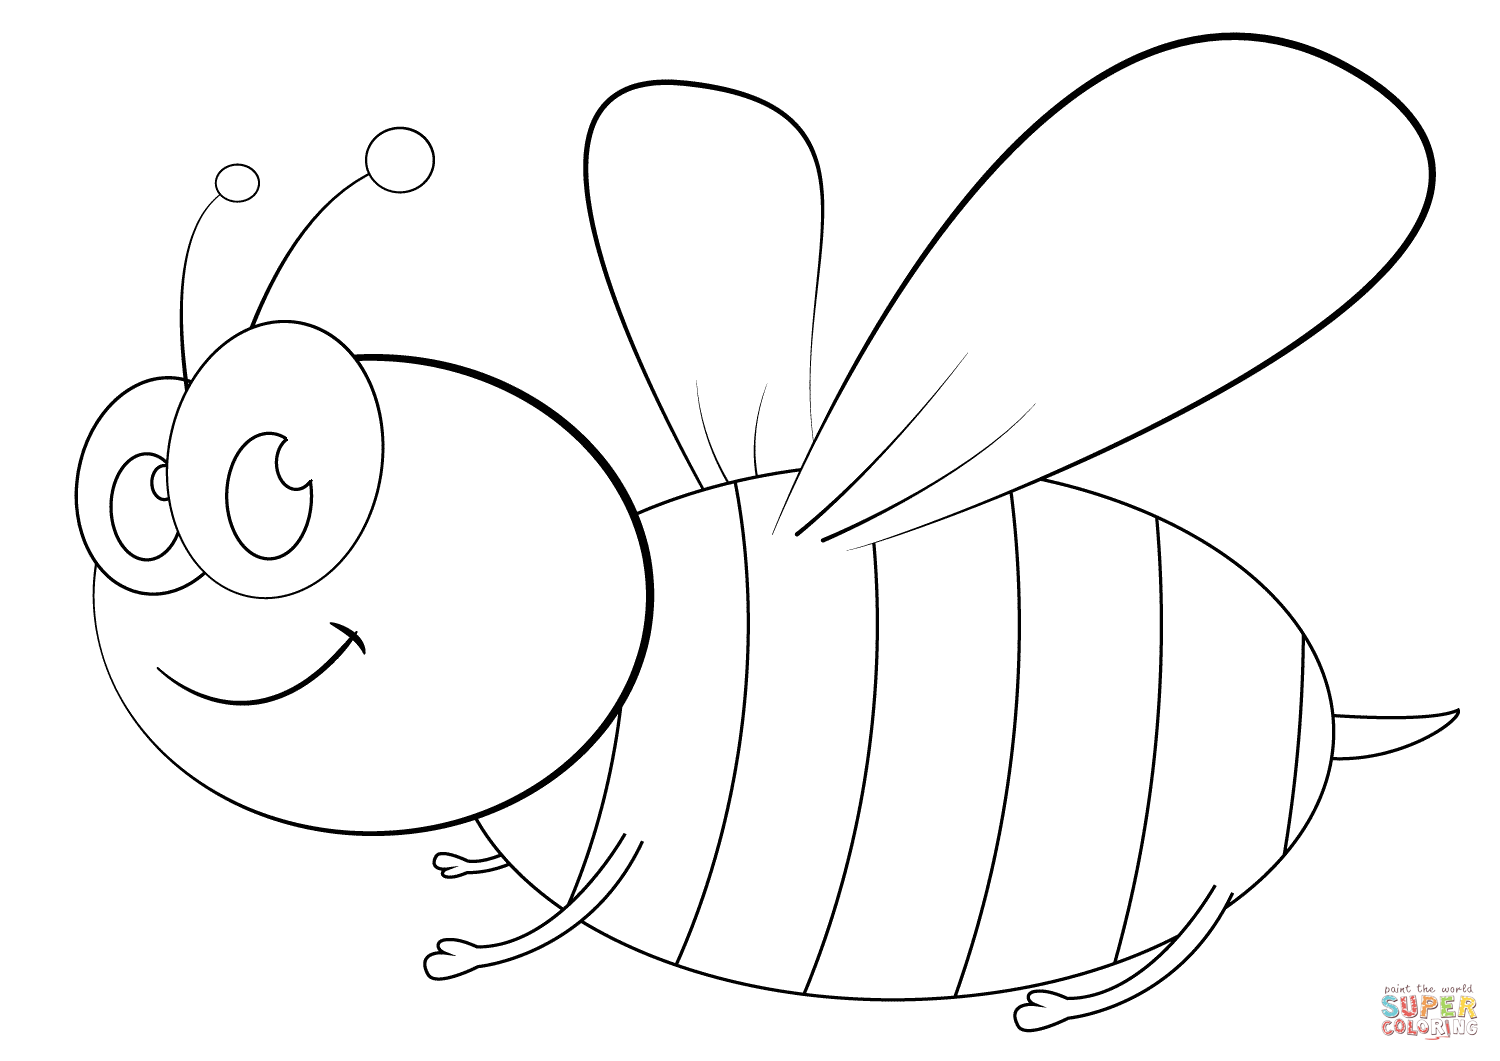 cartoon bumble bee coloring pages bee coloring page wecoloringpagecom bee cartoon bumble pages coloring